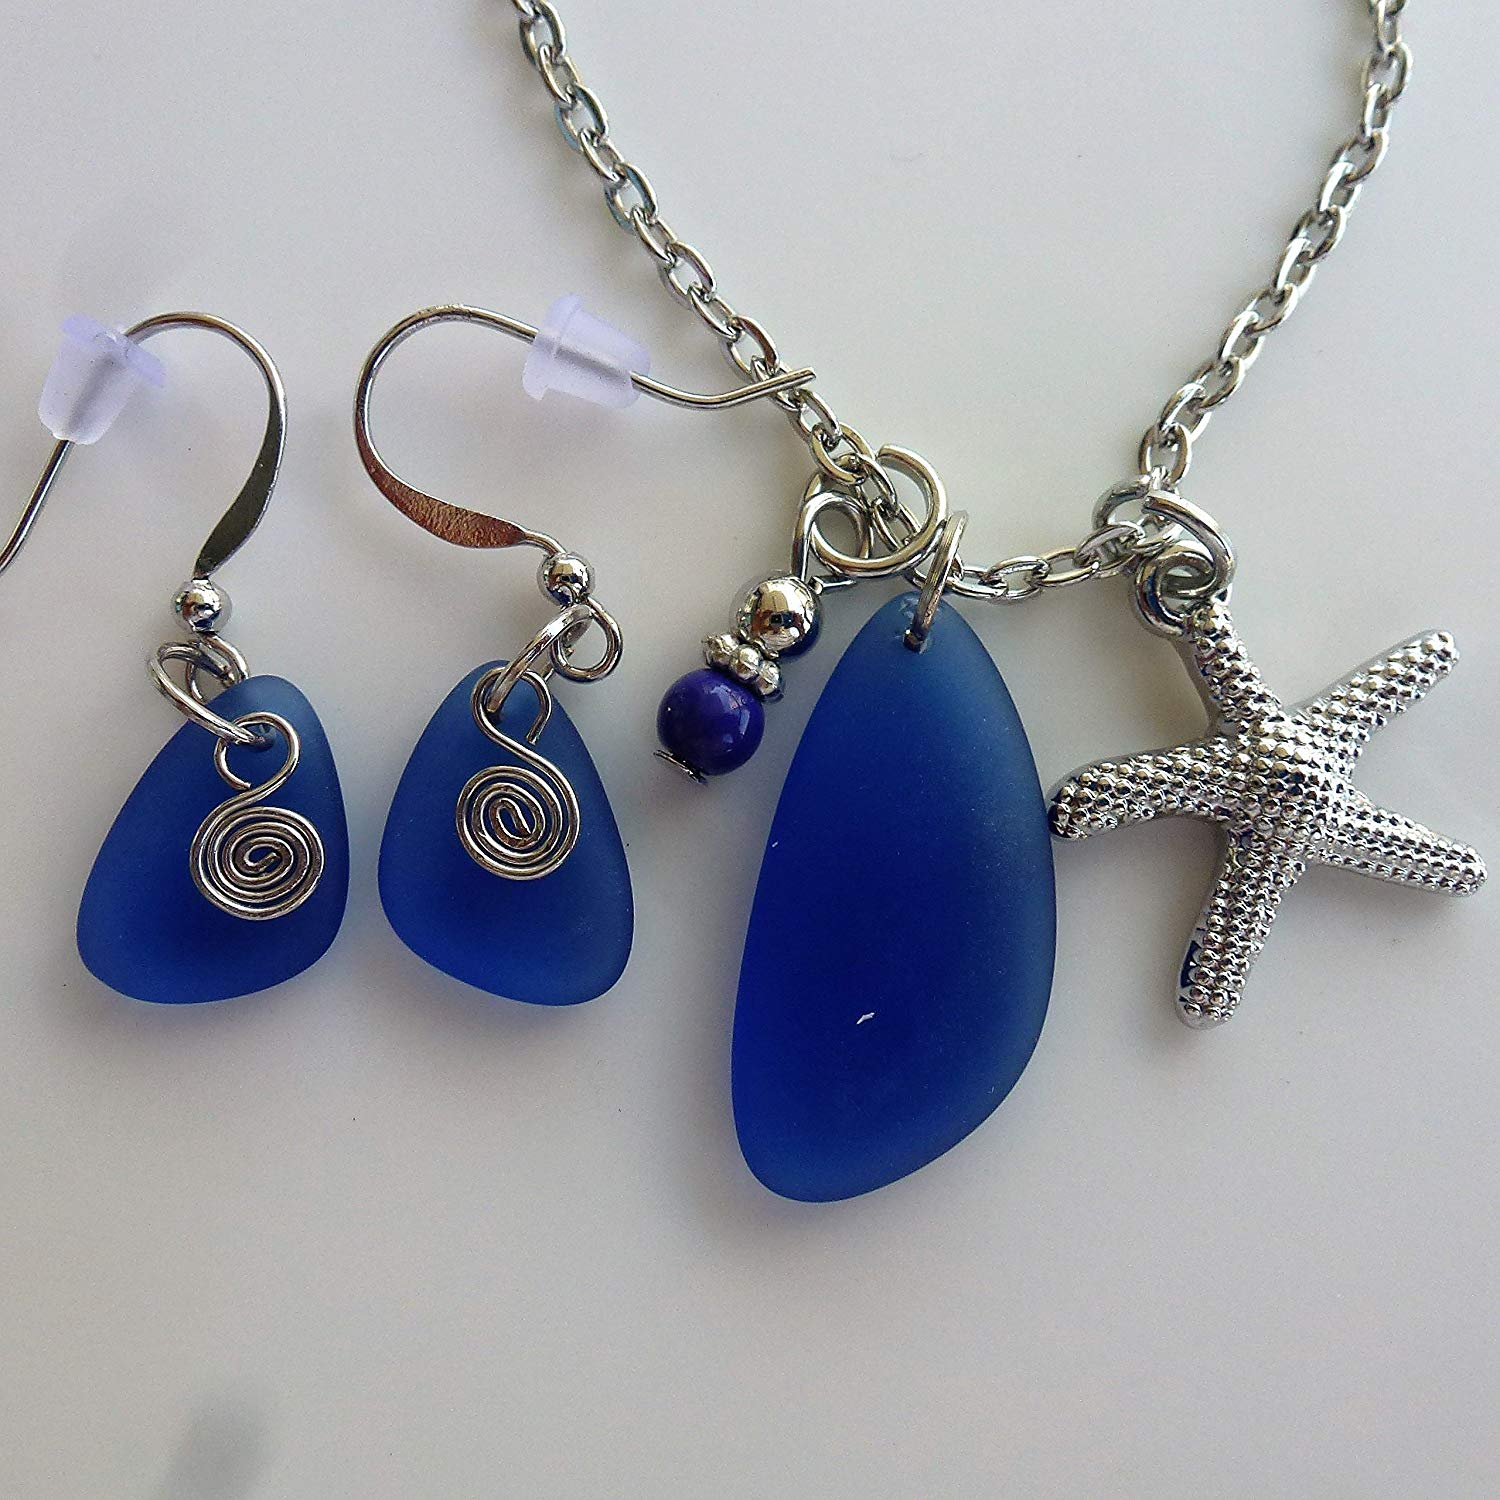 "SET of cobalt blue small 0.5 inch sea glass drop beach coast seashore EARRINGS and matching nautical recycled pendant on silver color starfish charm NECKLACE on 24"" inch chain with ocean mermaid tears"